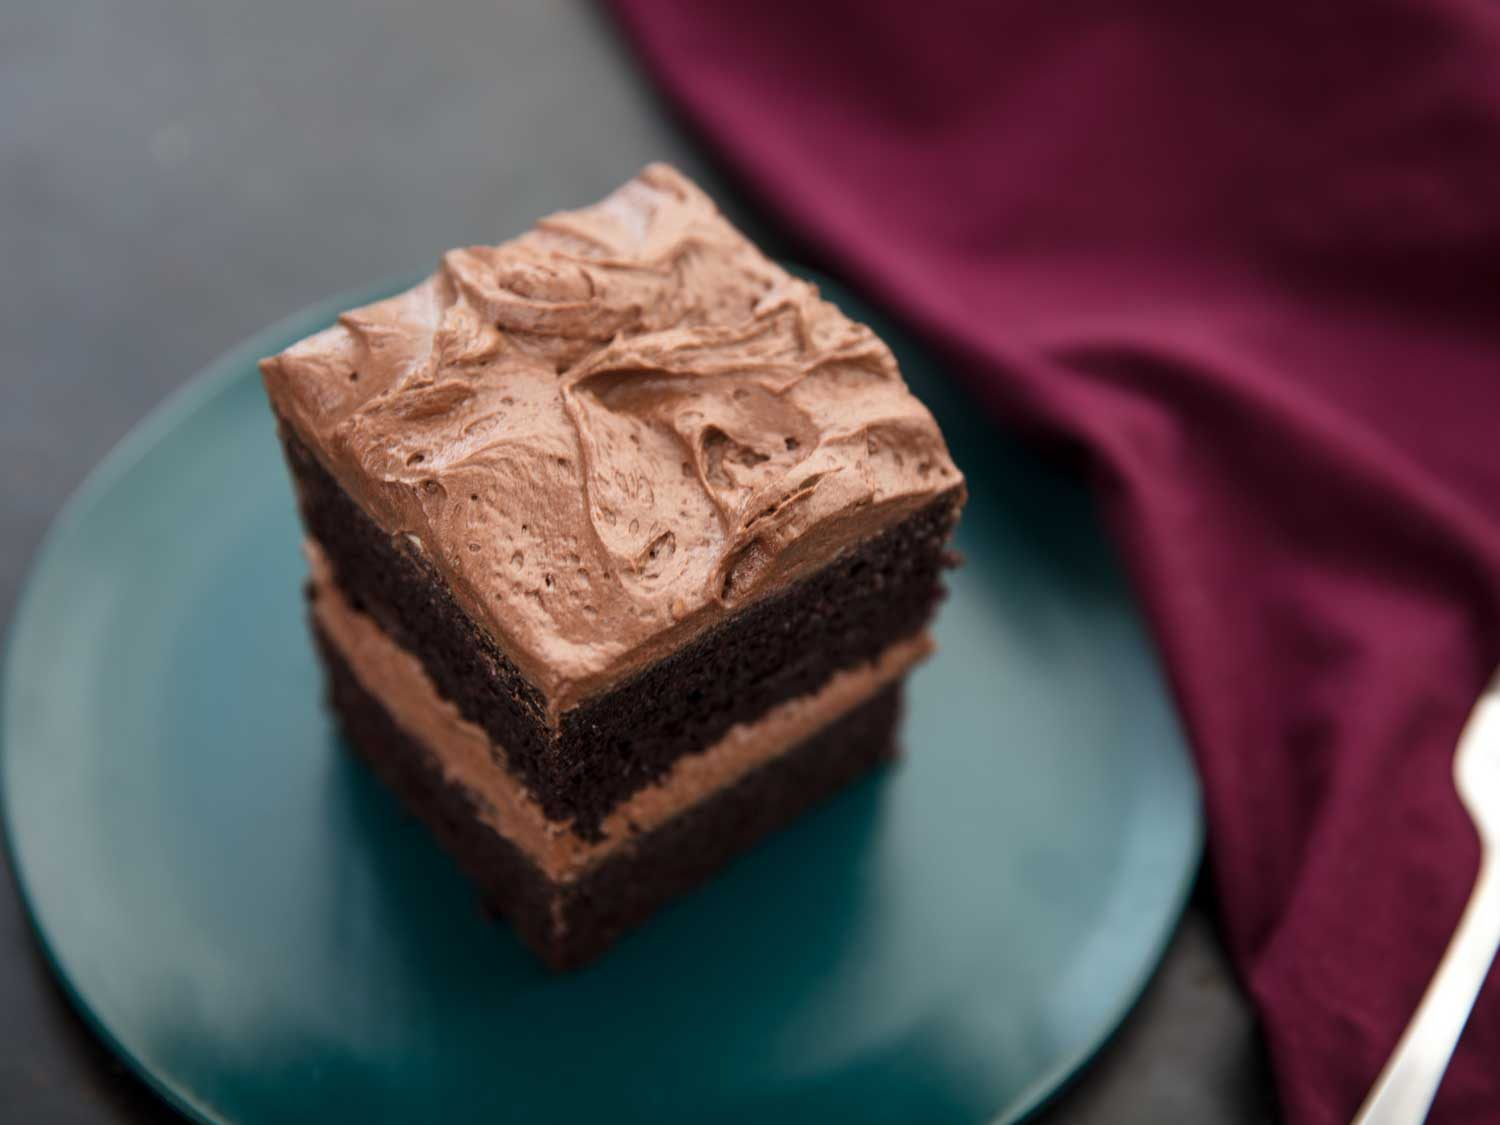 A square of double-layer chocolate cake frosted with creamy whipped chocolate frosting, on a green plate